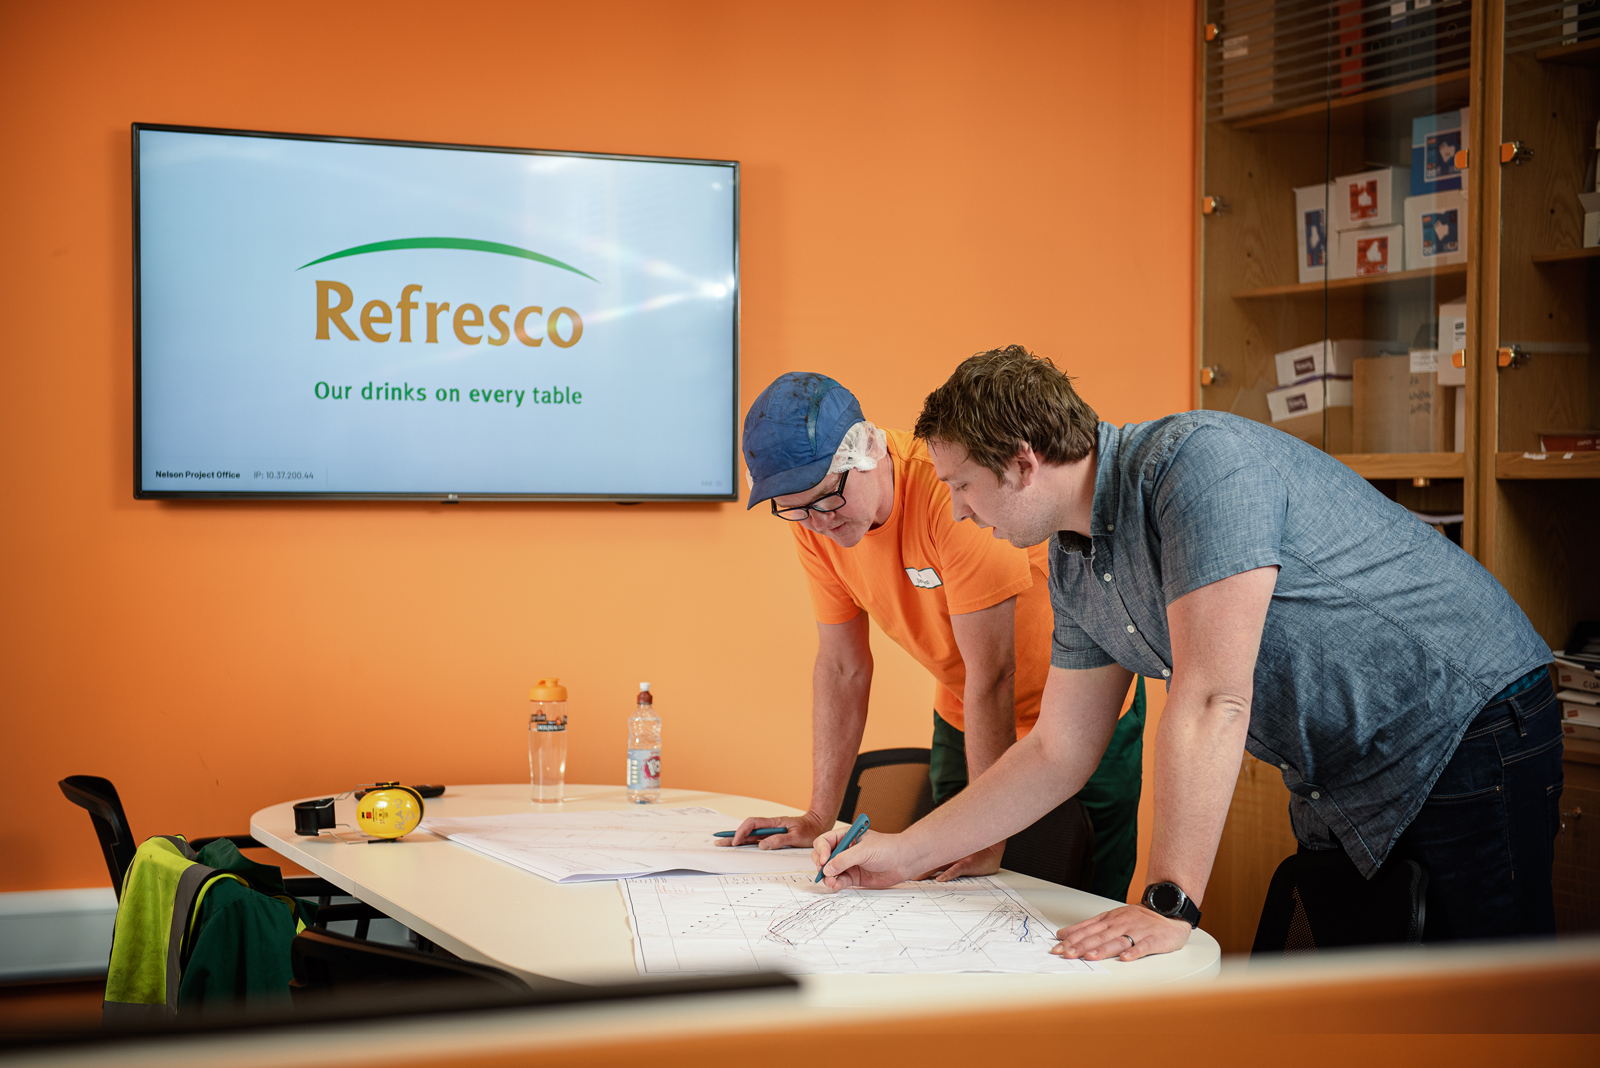 Team discuss a project in the boardroom at Refresco